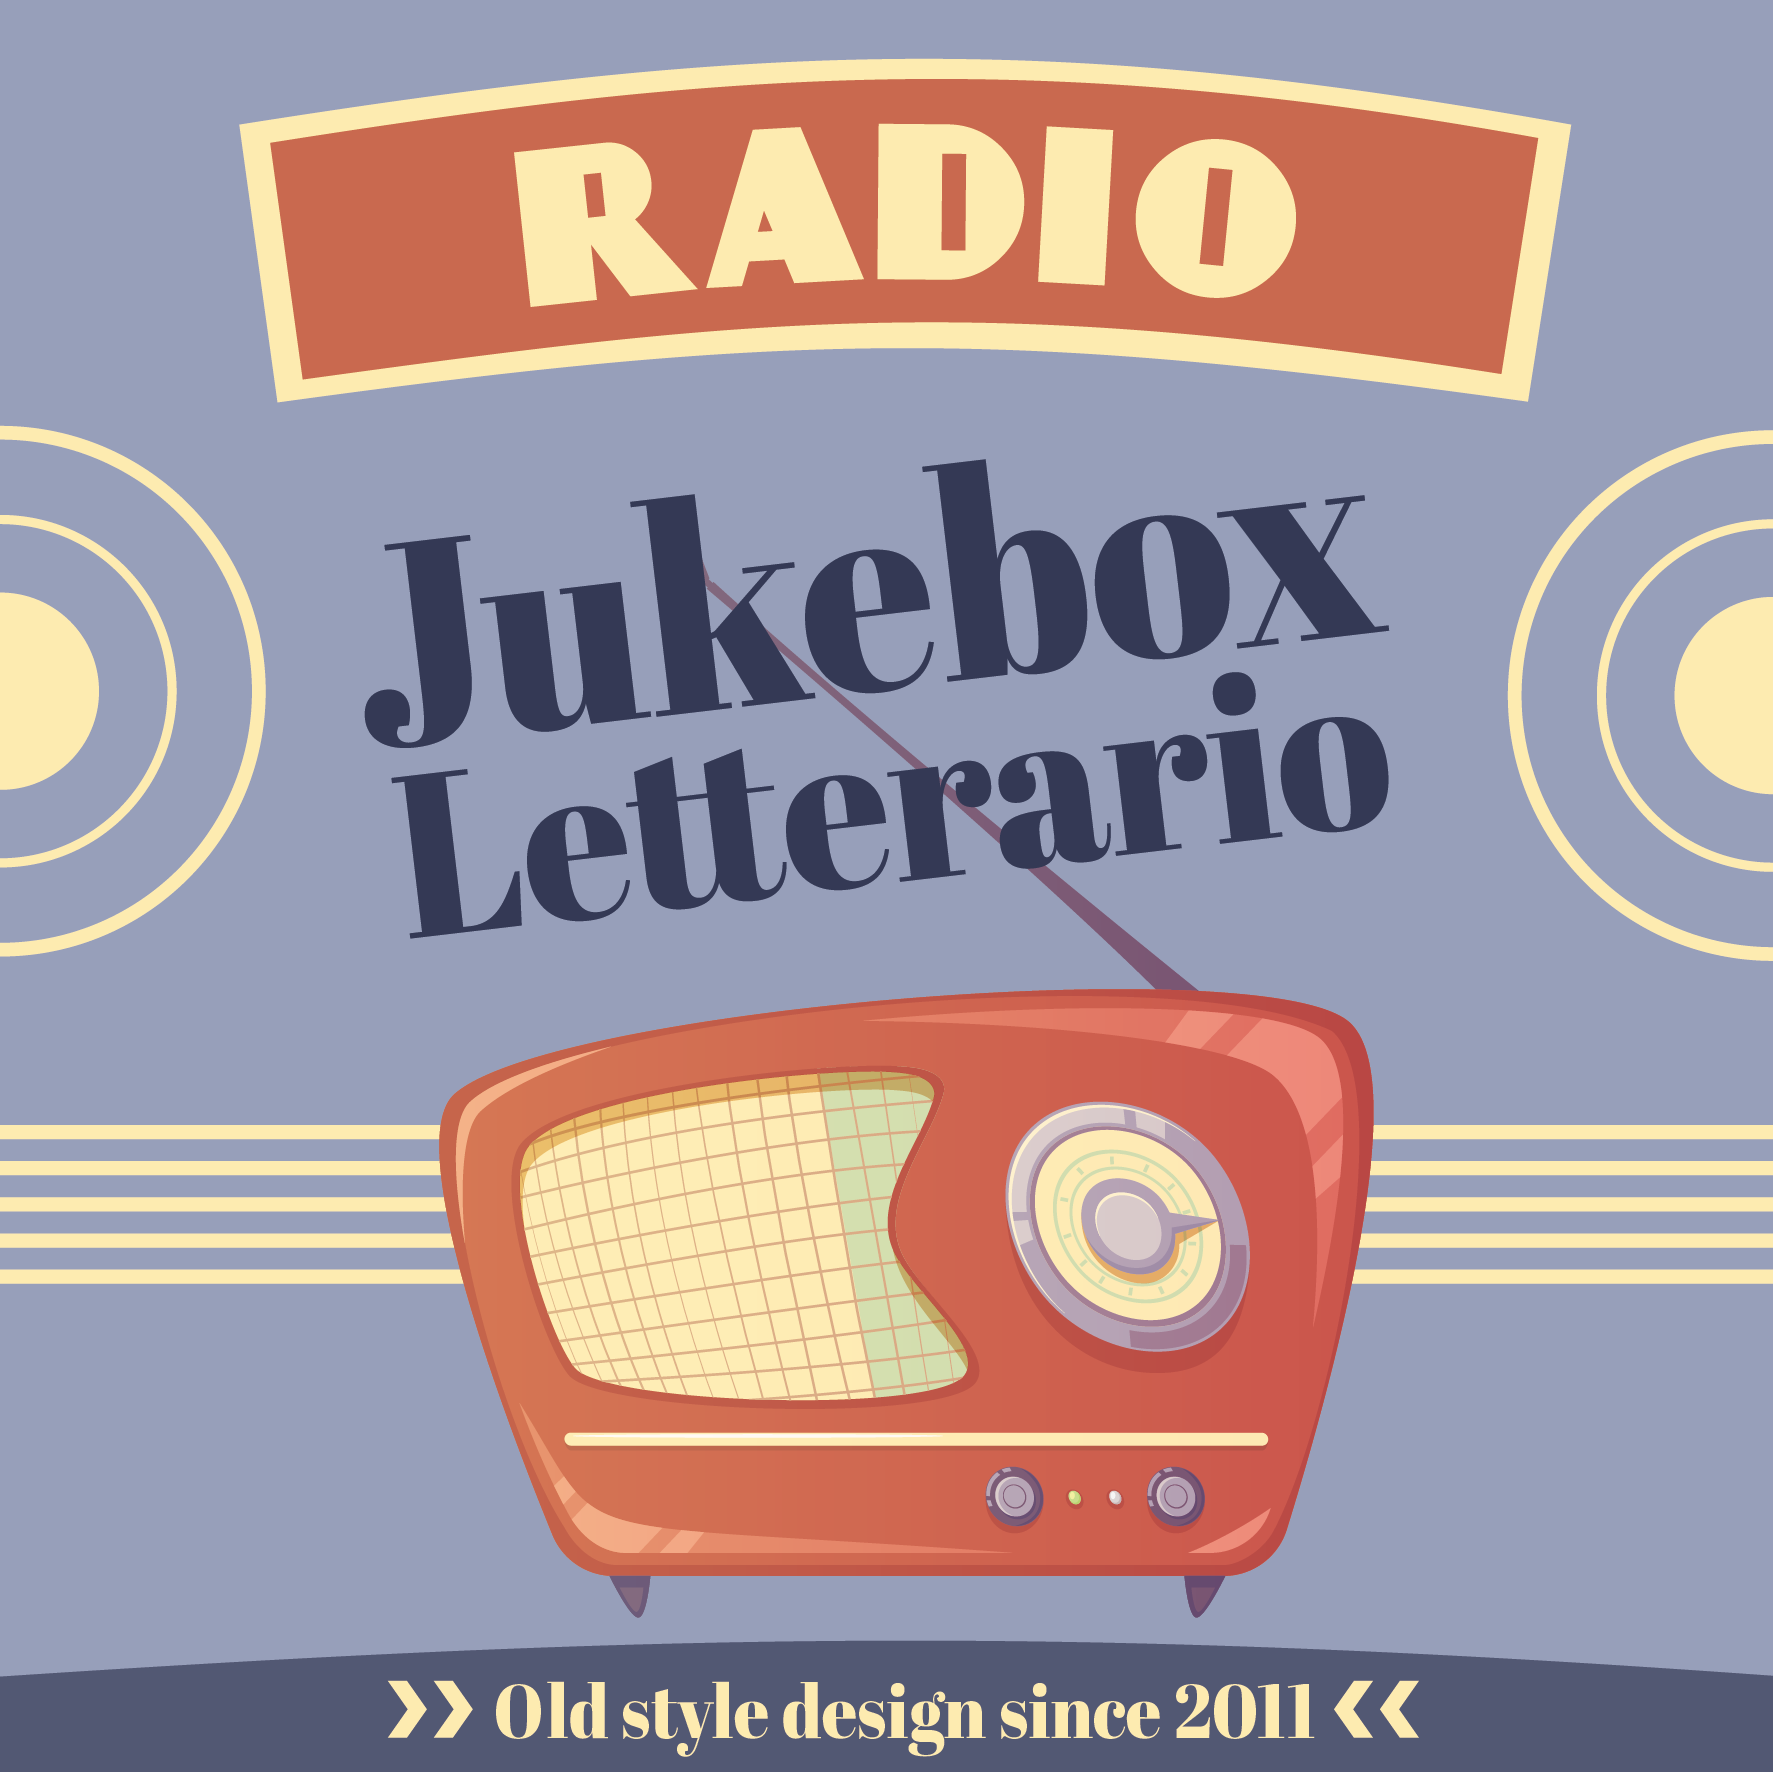 JukeBox Letterario